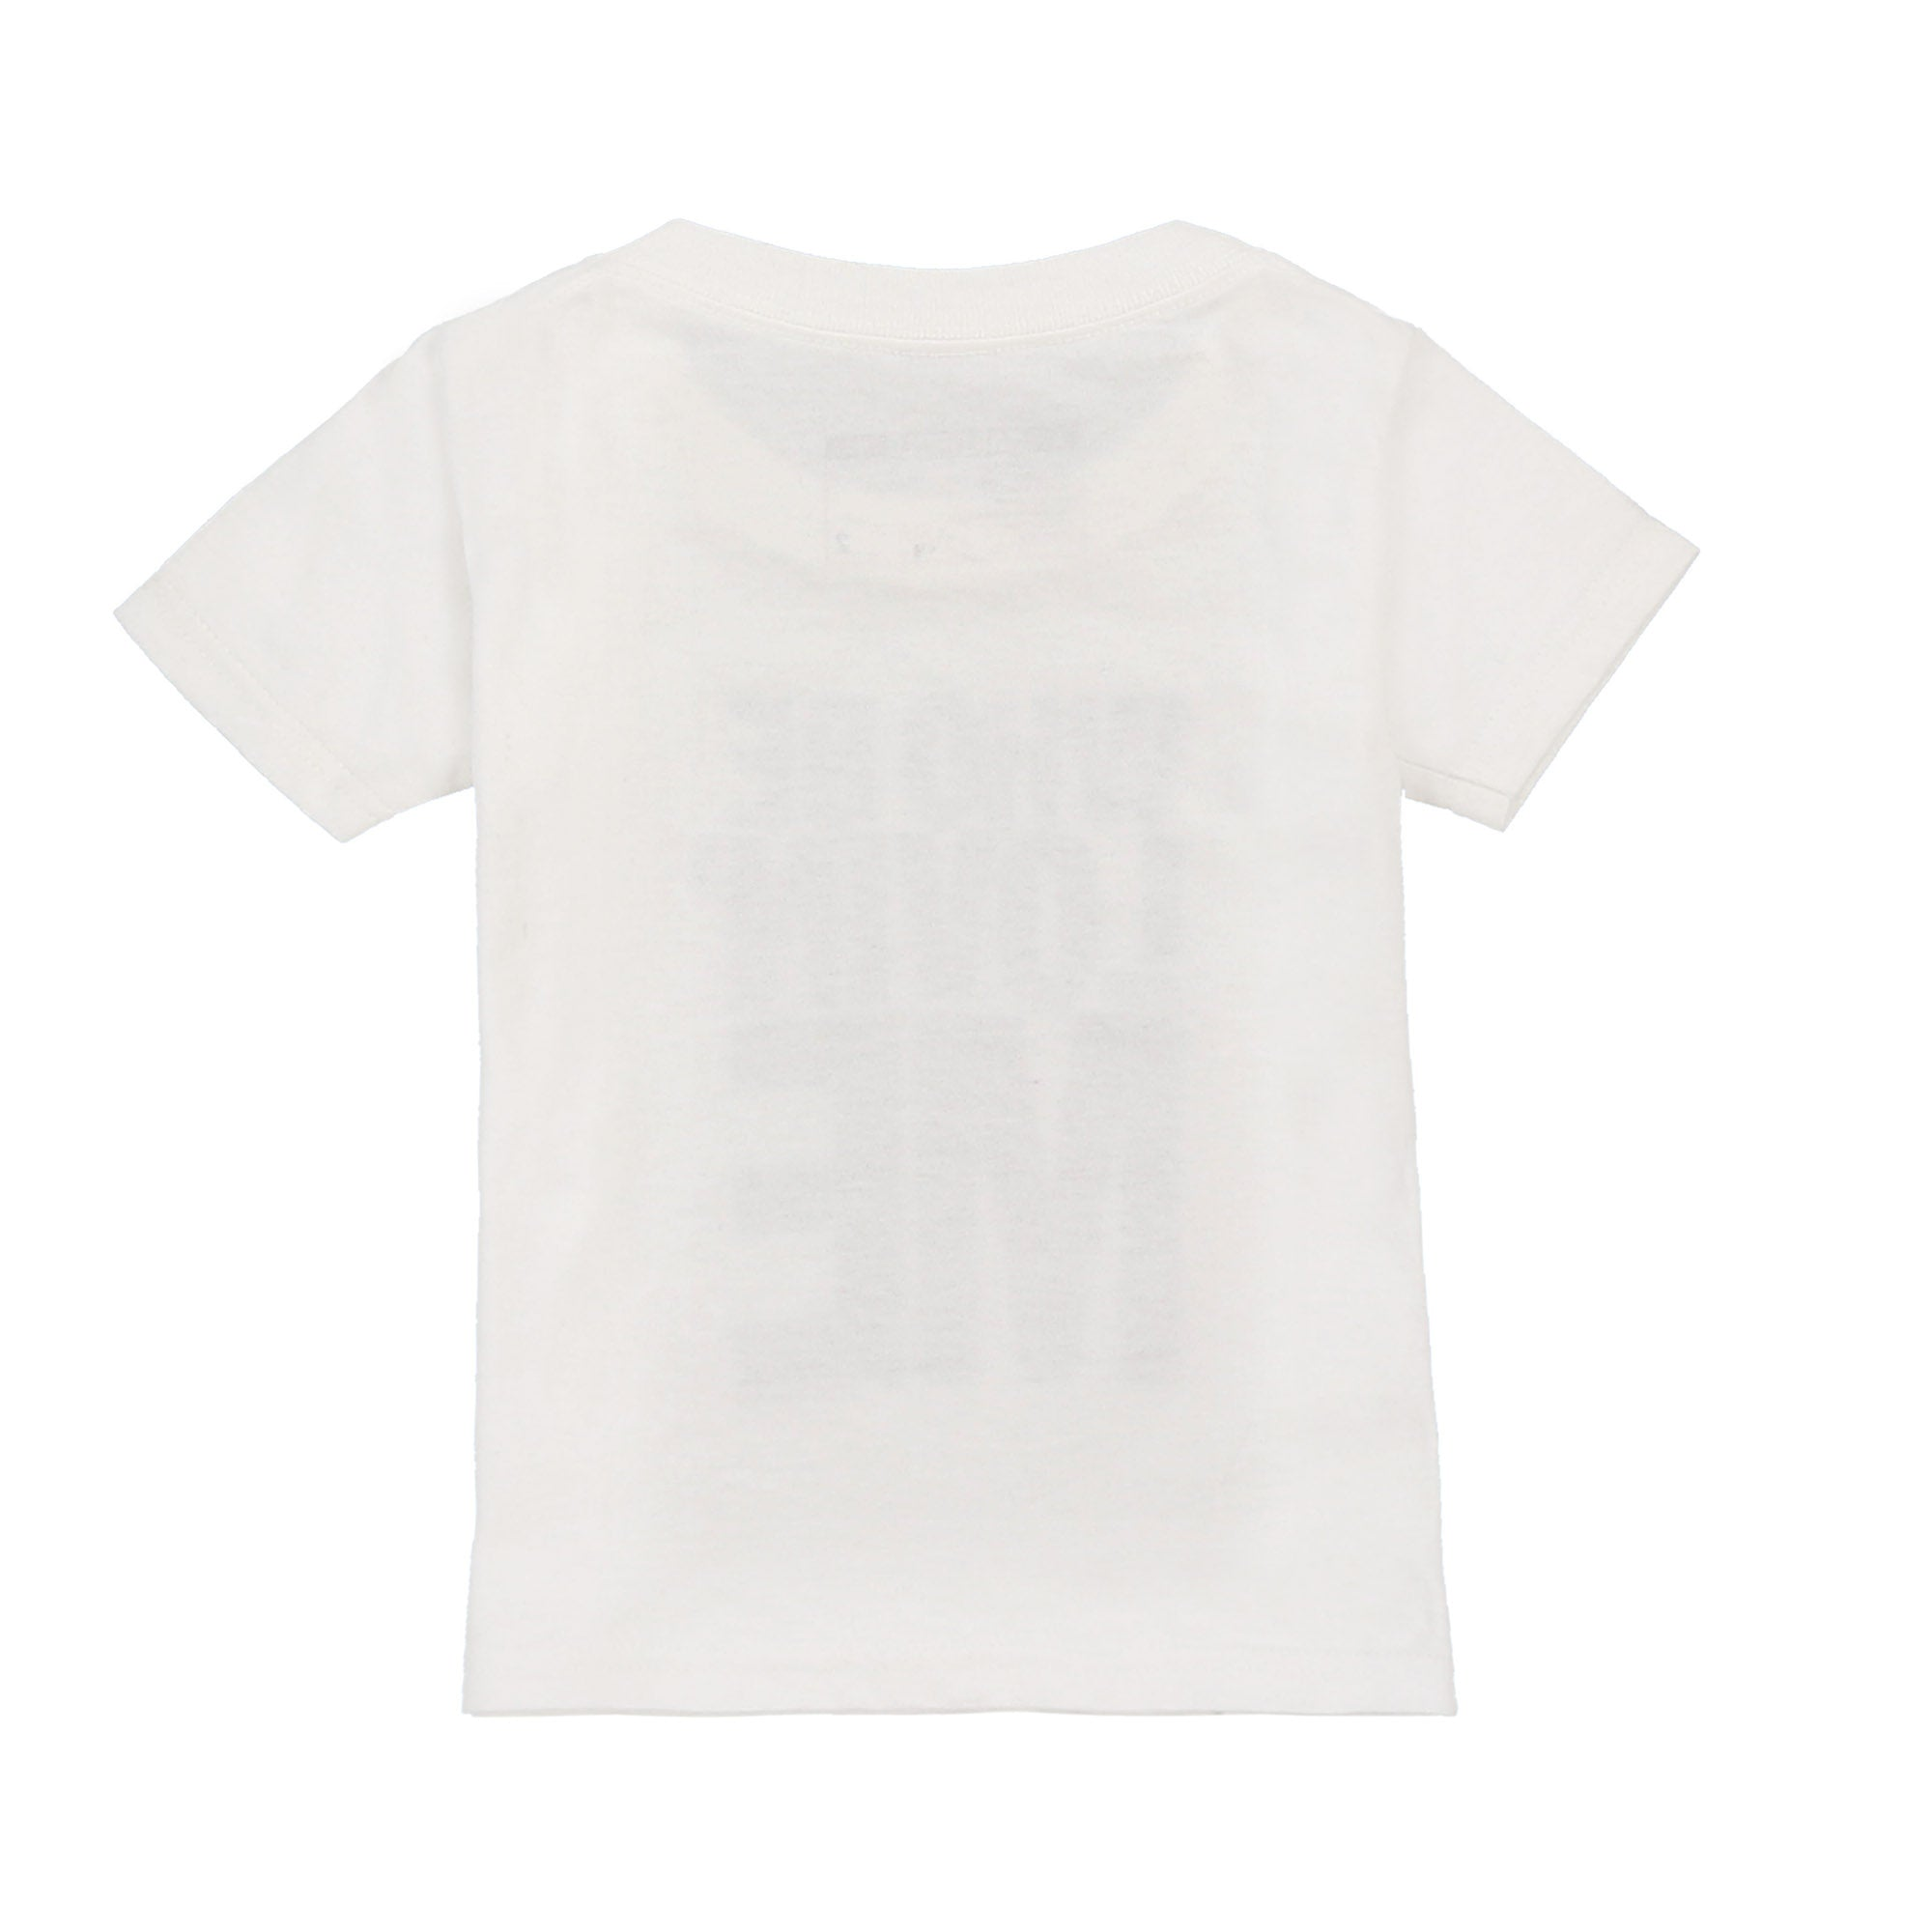 Who Be Lovin Me Baby Tee (White)